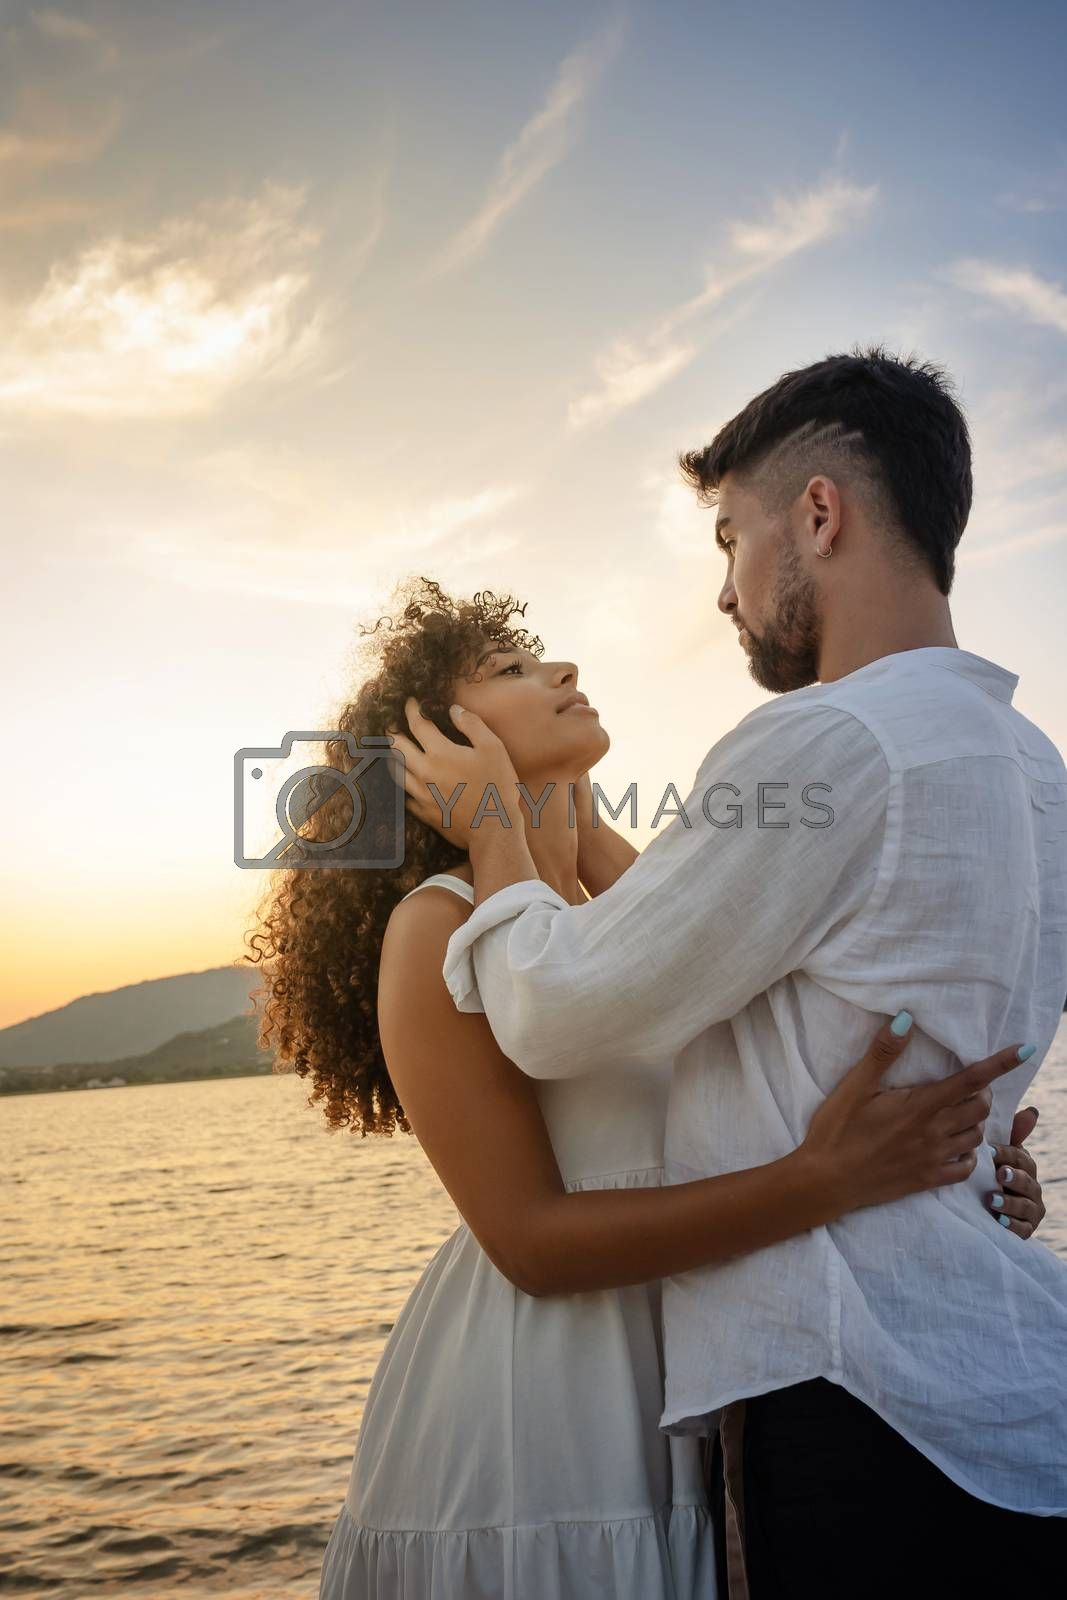 Royalty free image of Young attractive caucasian bearded man with modern haircut holds his black Hispanic girlfriend's head in his hands looking into her eyes while she hugs him - Multiracial couple romance scene at sunset by robbyfontanesi